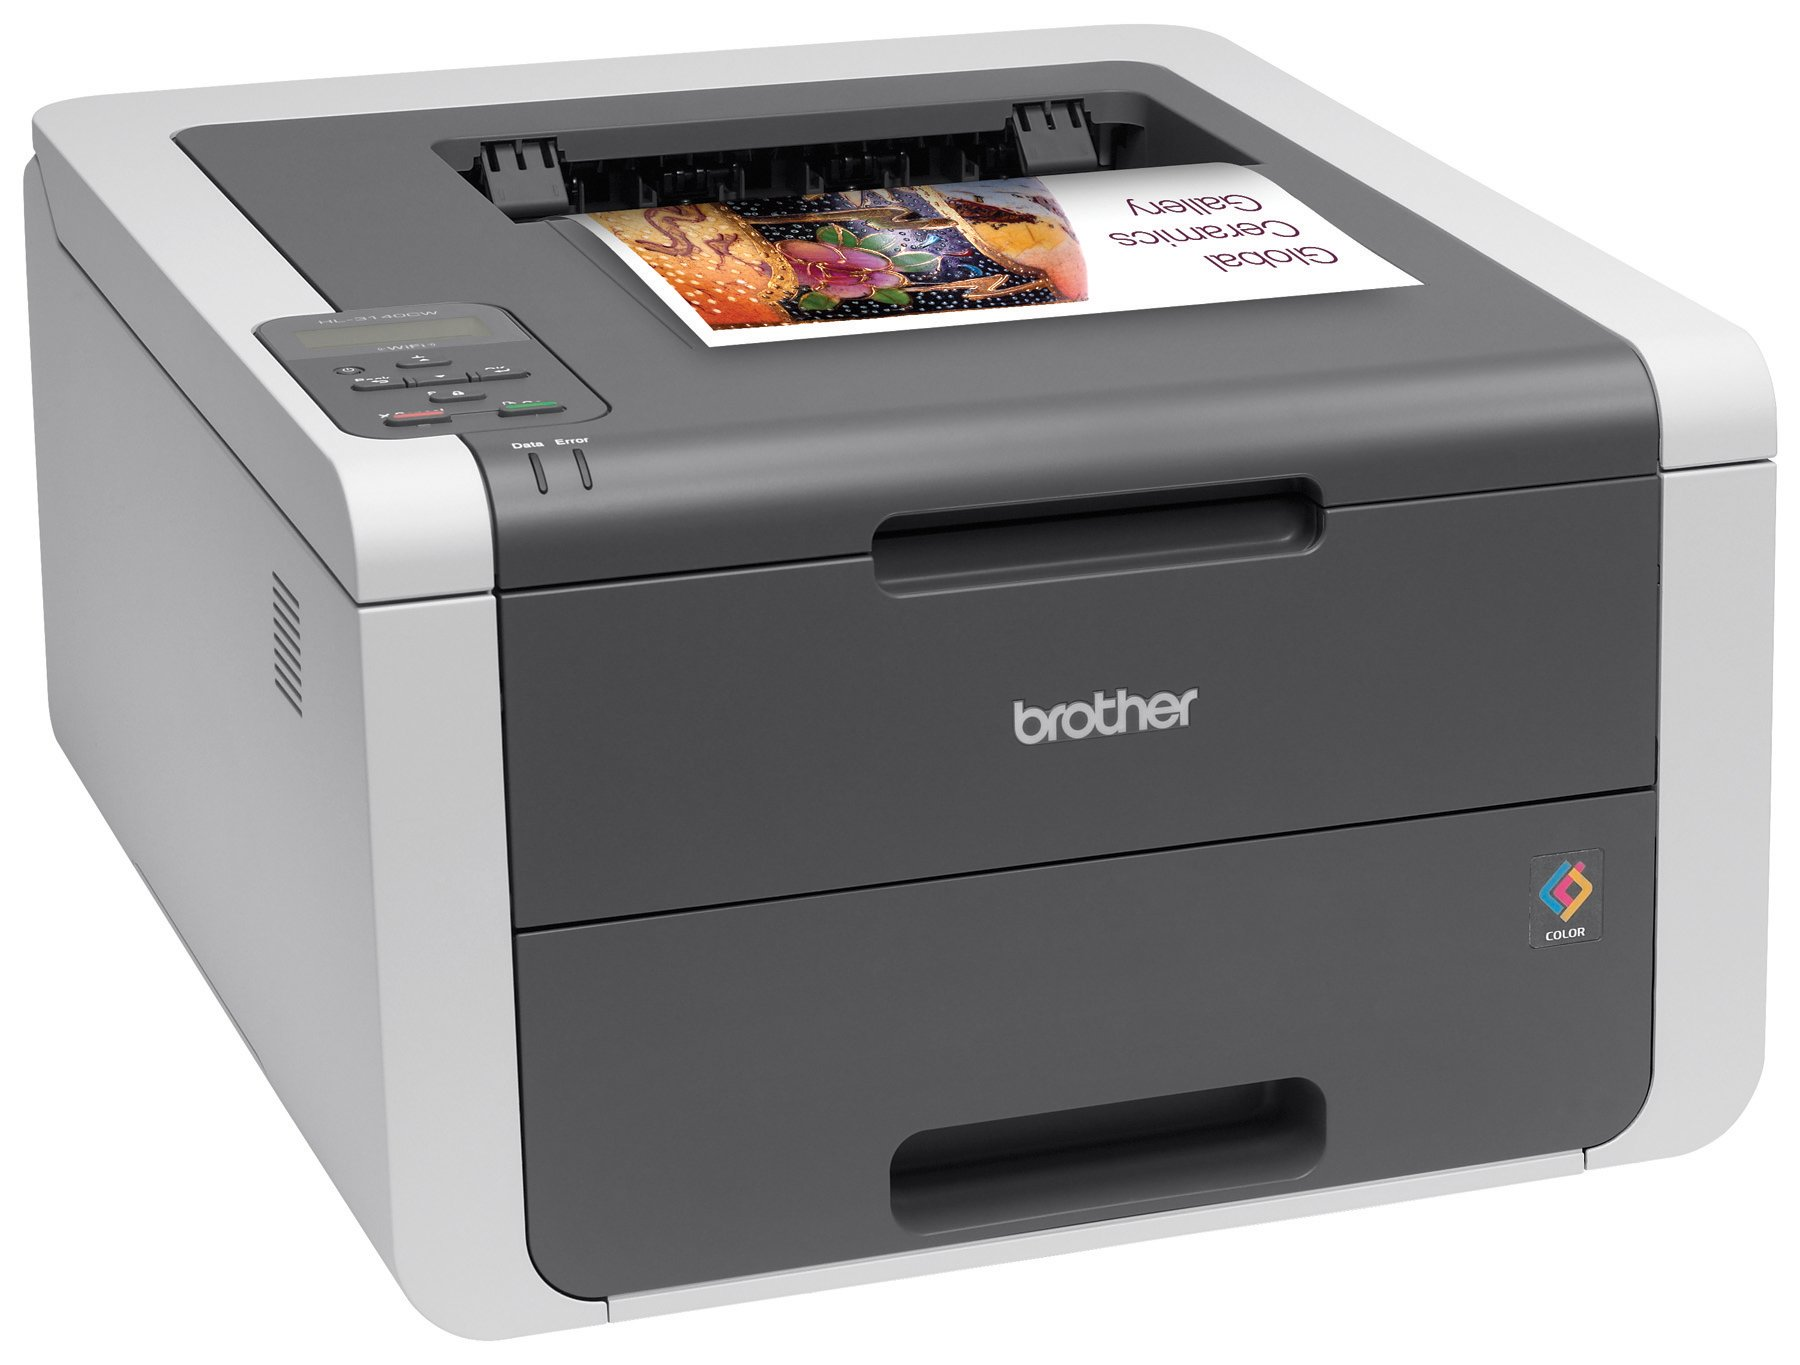 Brother Printer HL3140CW Digital Color Printer with Wireless Networking, Amazon Dash Replenishment Enabled by Brother